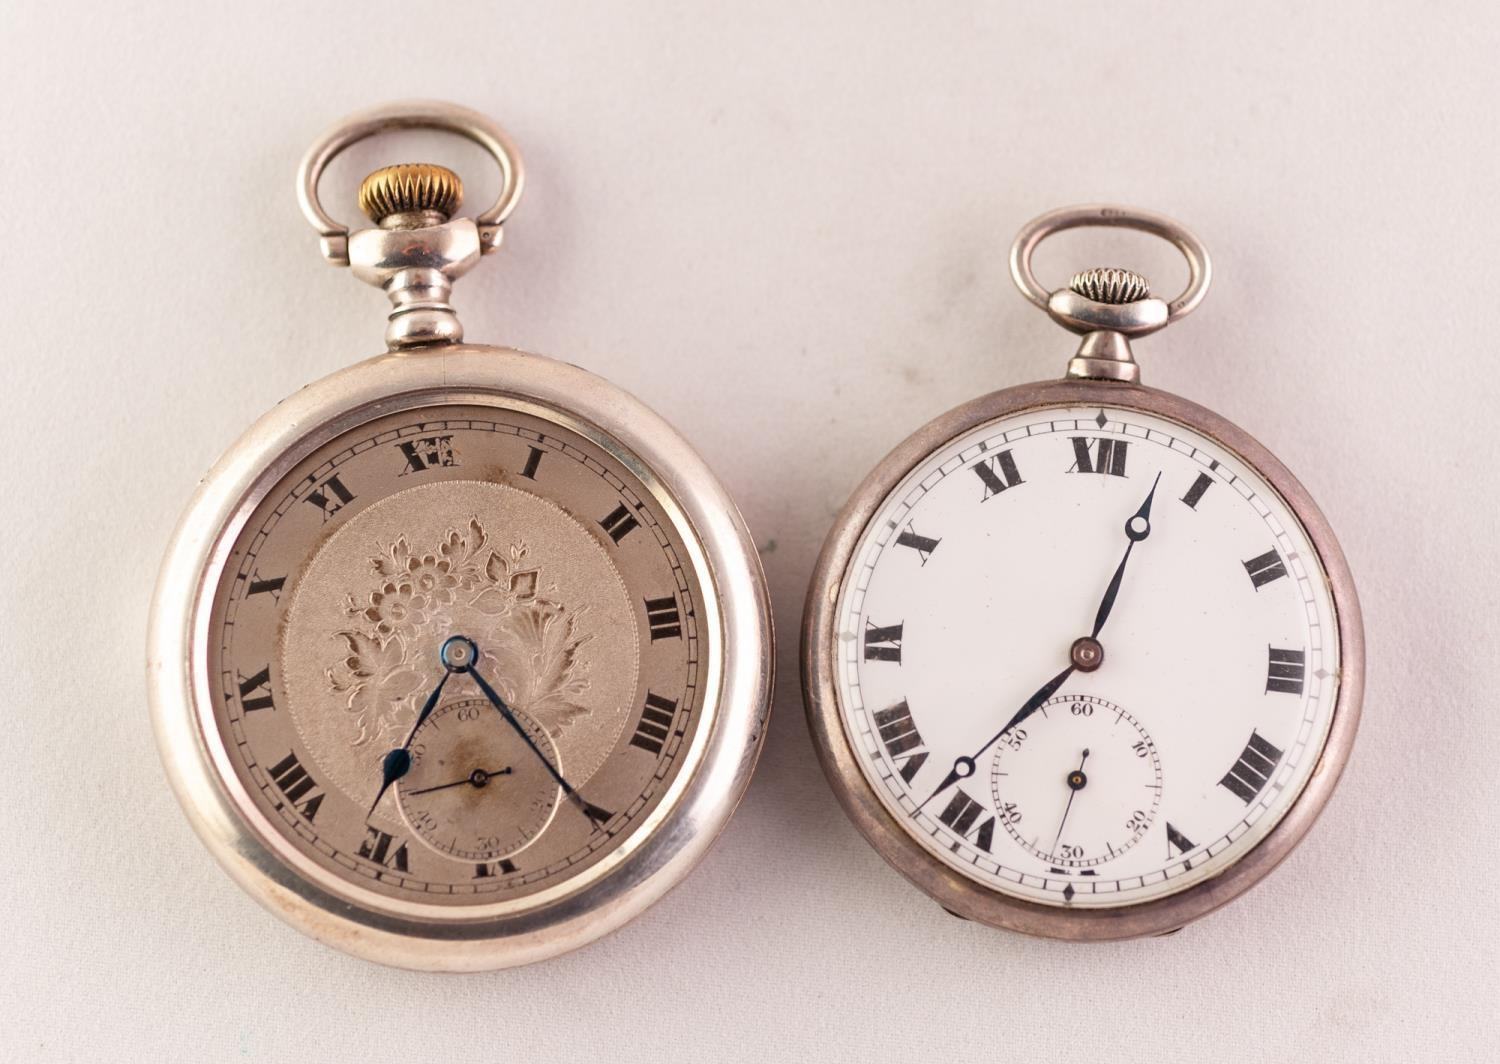 Lot 42 - TWO OPEN FACE POCKET WATCHES To include a silver pocket watch with keyless movement, together with a